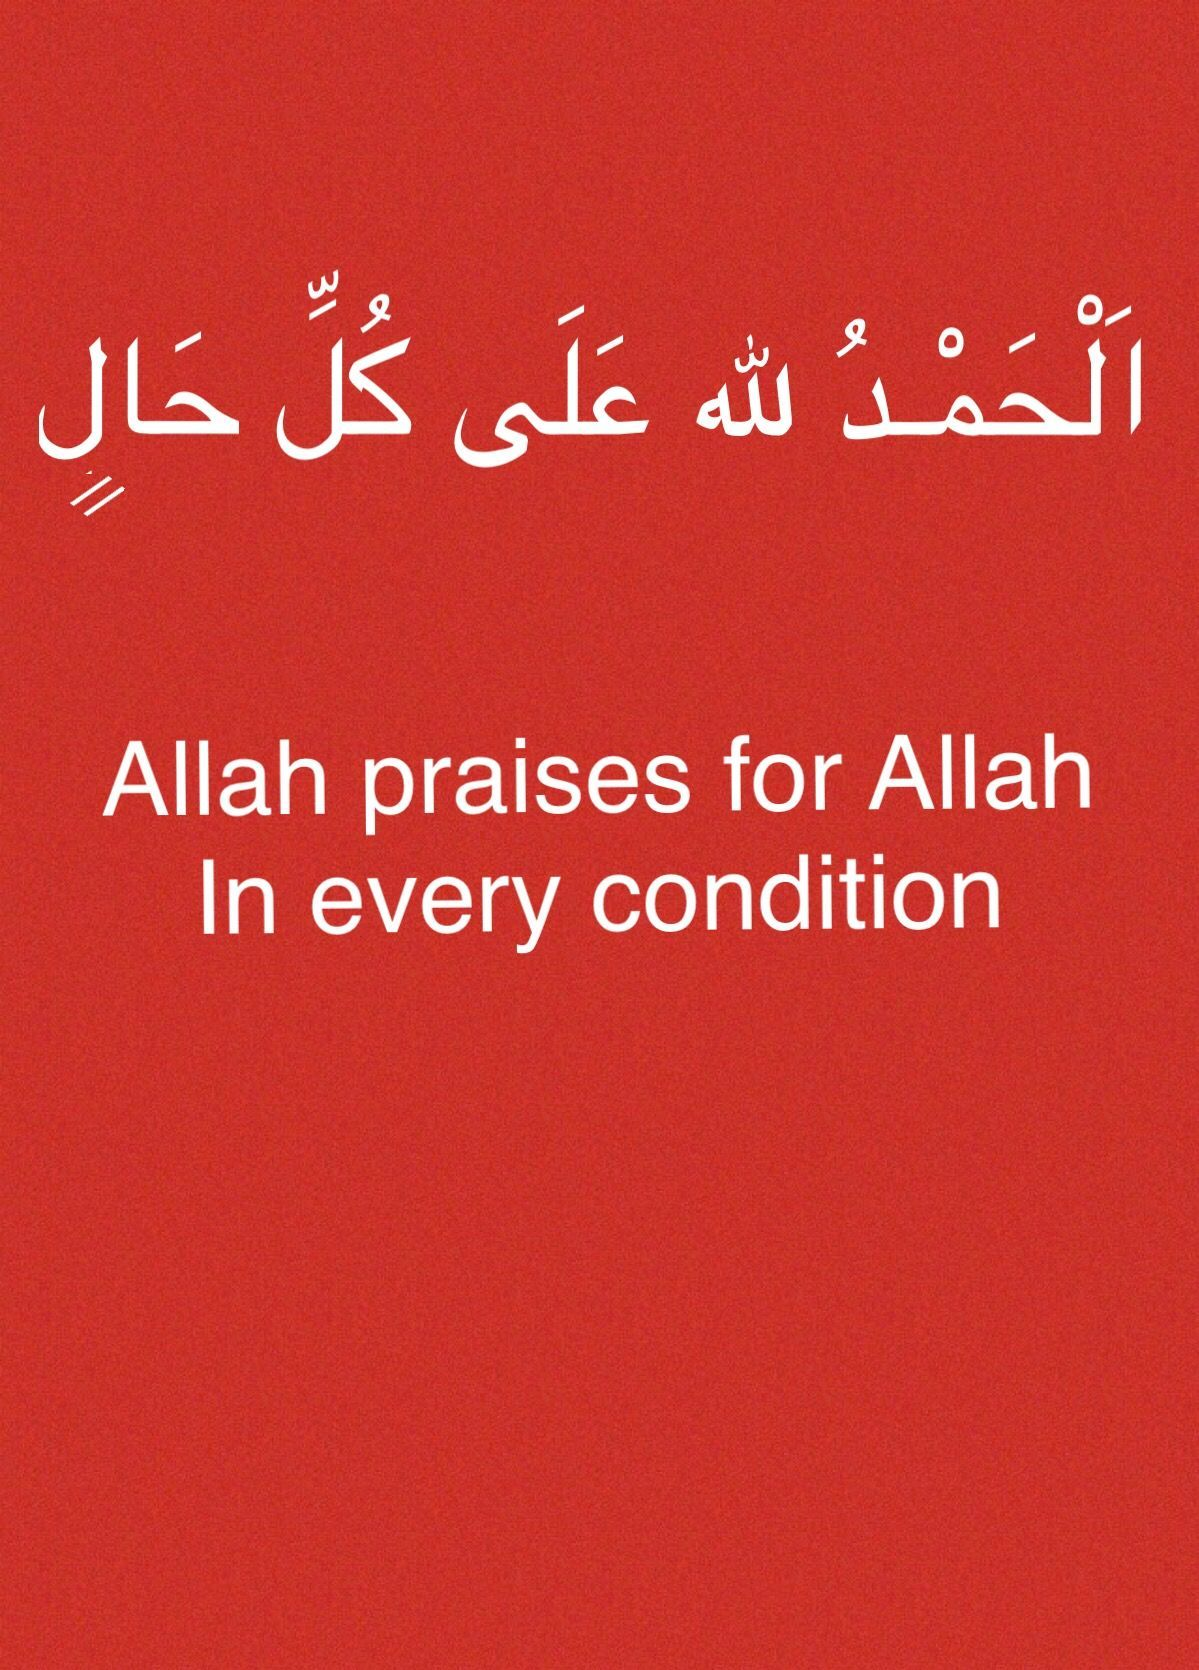 Pin By Shakira On Daily Arabic Lessons Learn English English Language Learning Learning Arabic